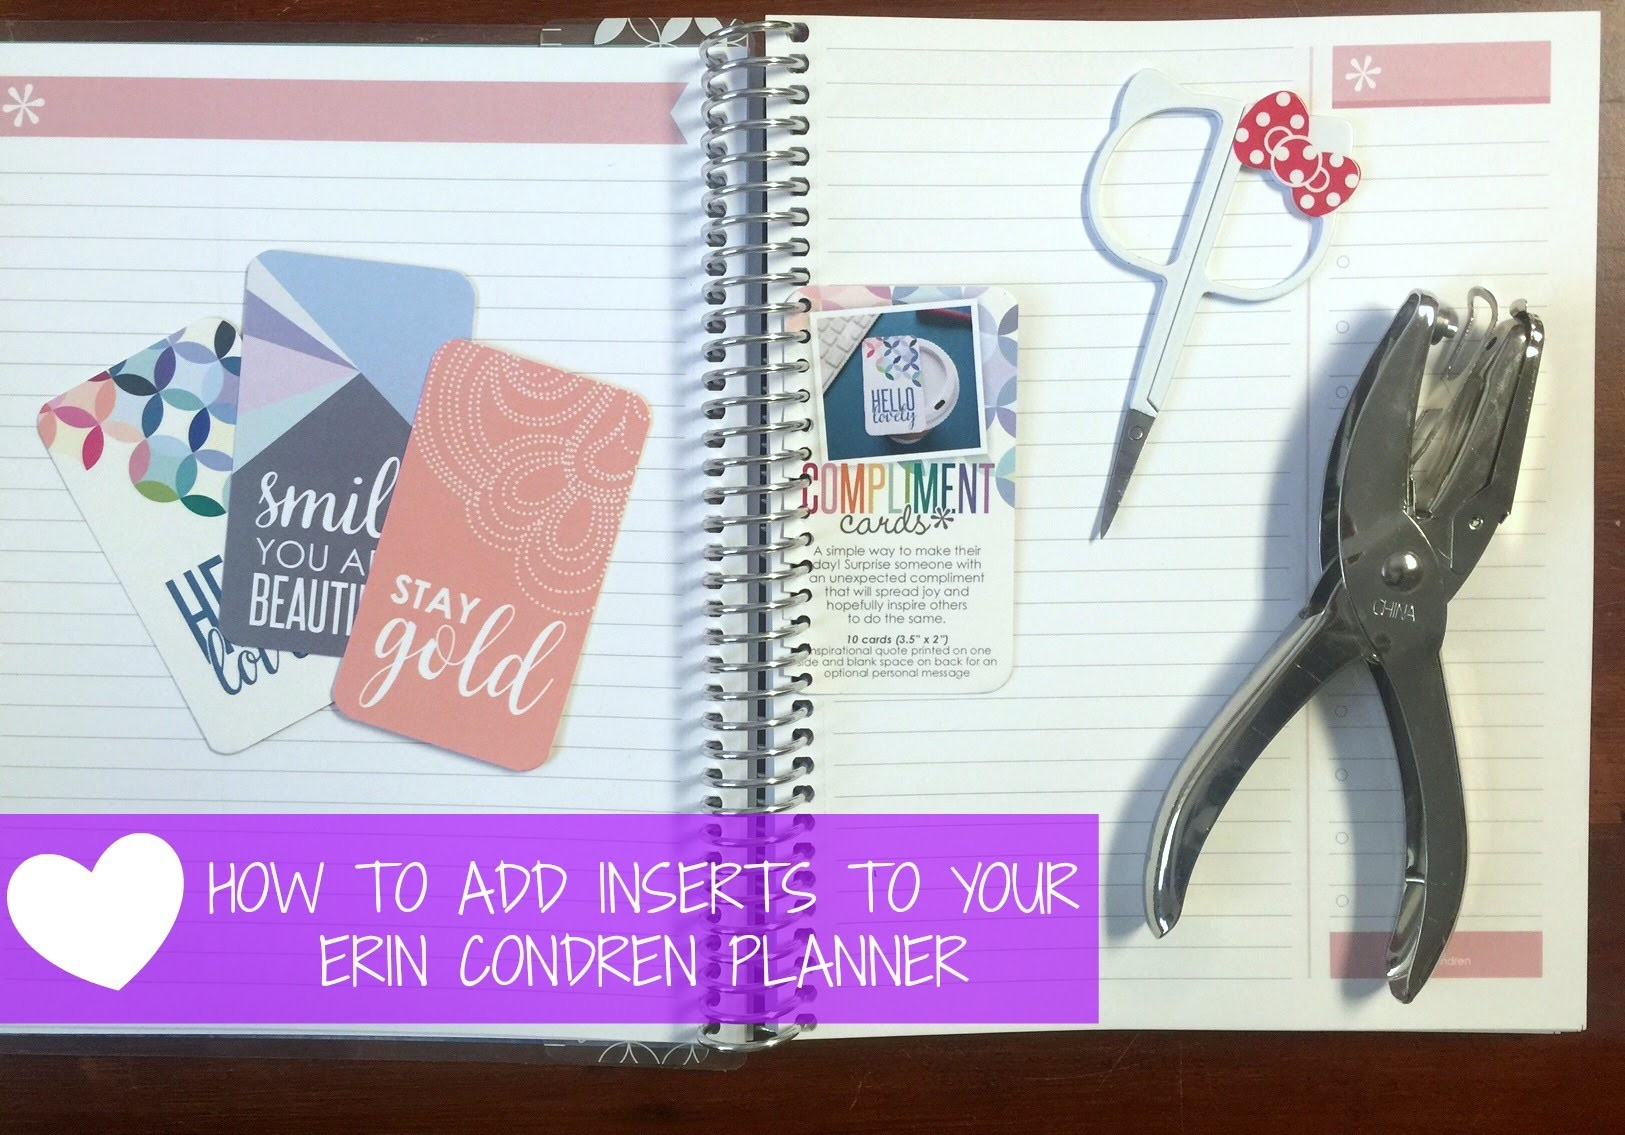 DIY HOW TO PERSONALIZE AND ADD INSERTS TO YOUR ERIN CONDREN PLANNER